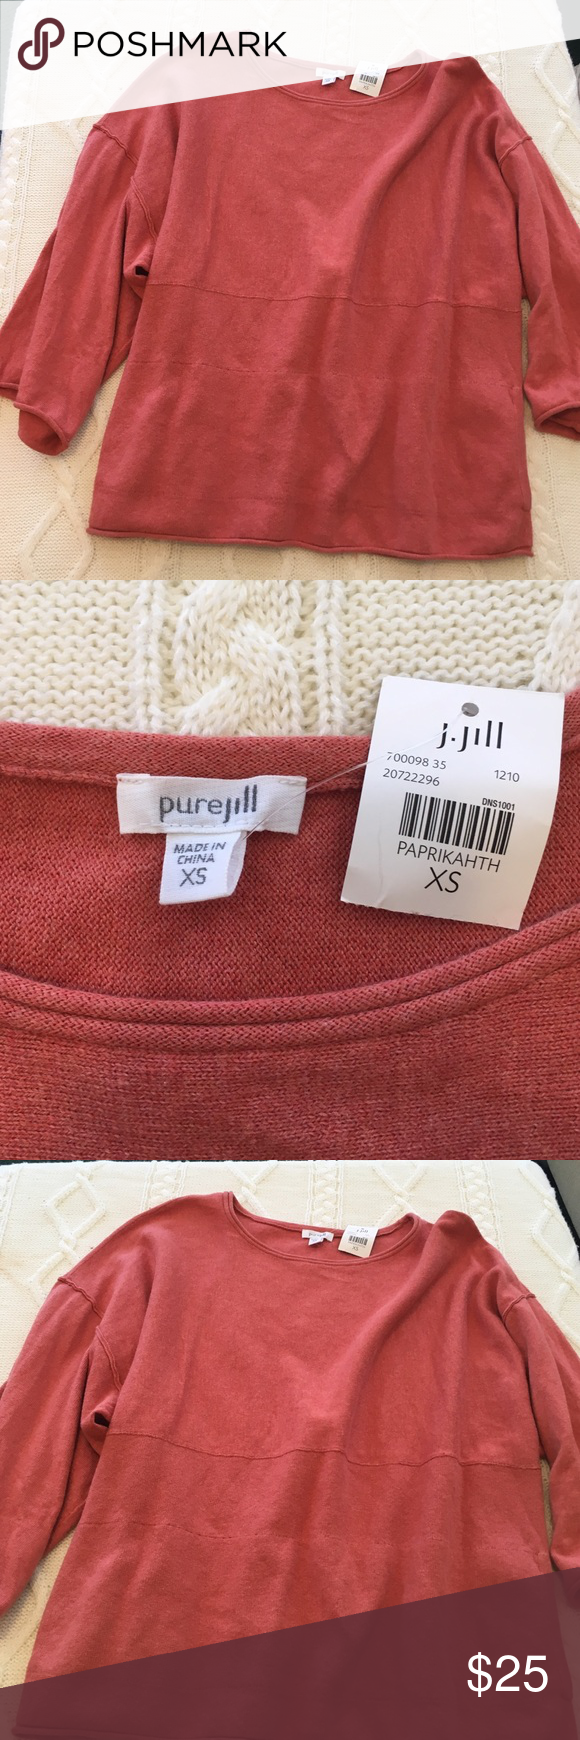 NWT J.jill Sweater NWT J.jill coral colored poncho sweater. 95% cotton and 5% cashmere. Absolutely beautiful! 💕 J. Jill Sweaters Shrugs & Ponchos